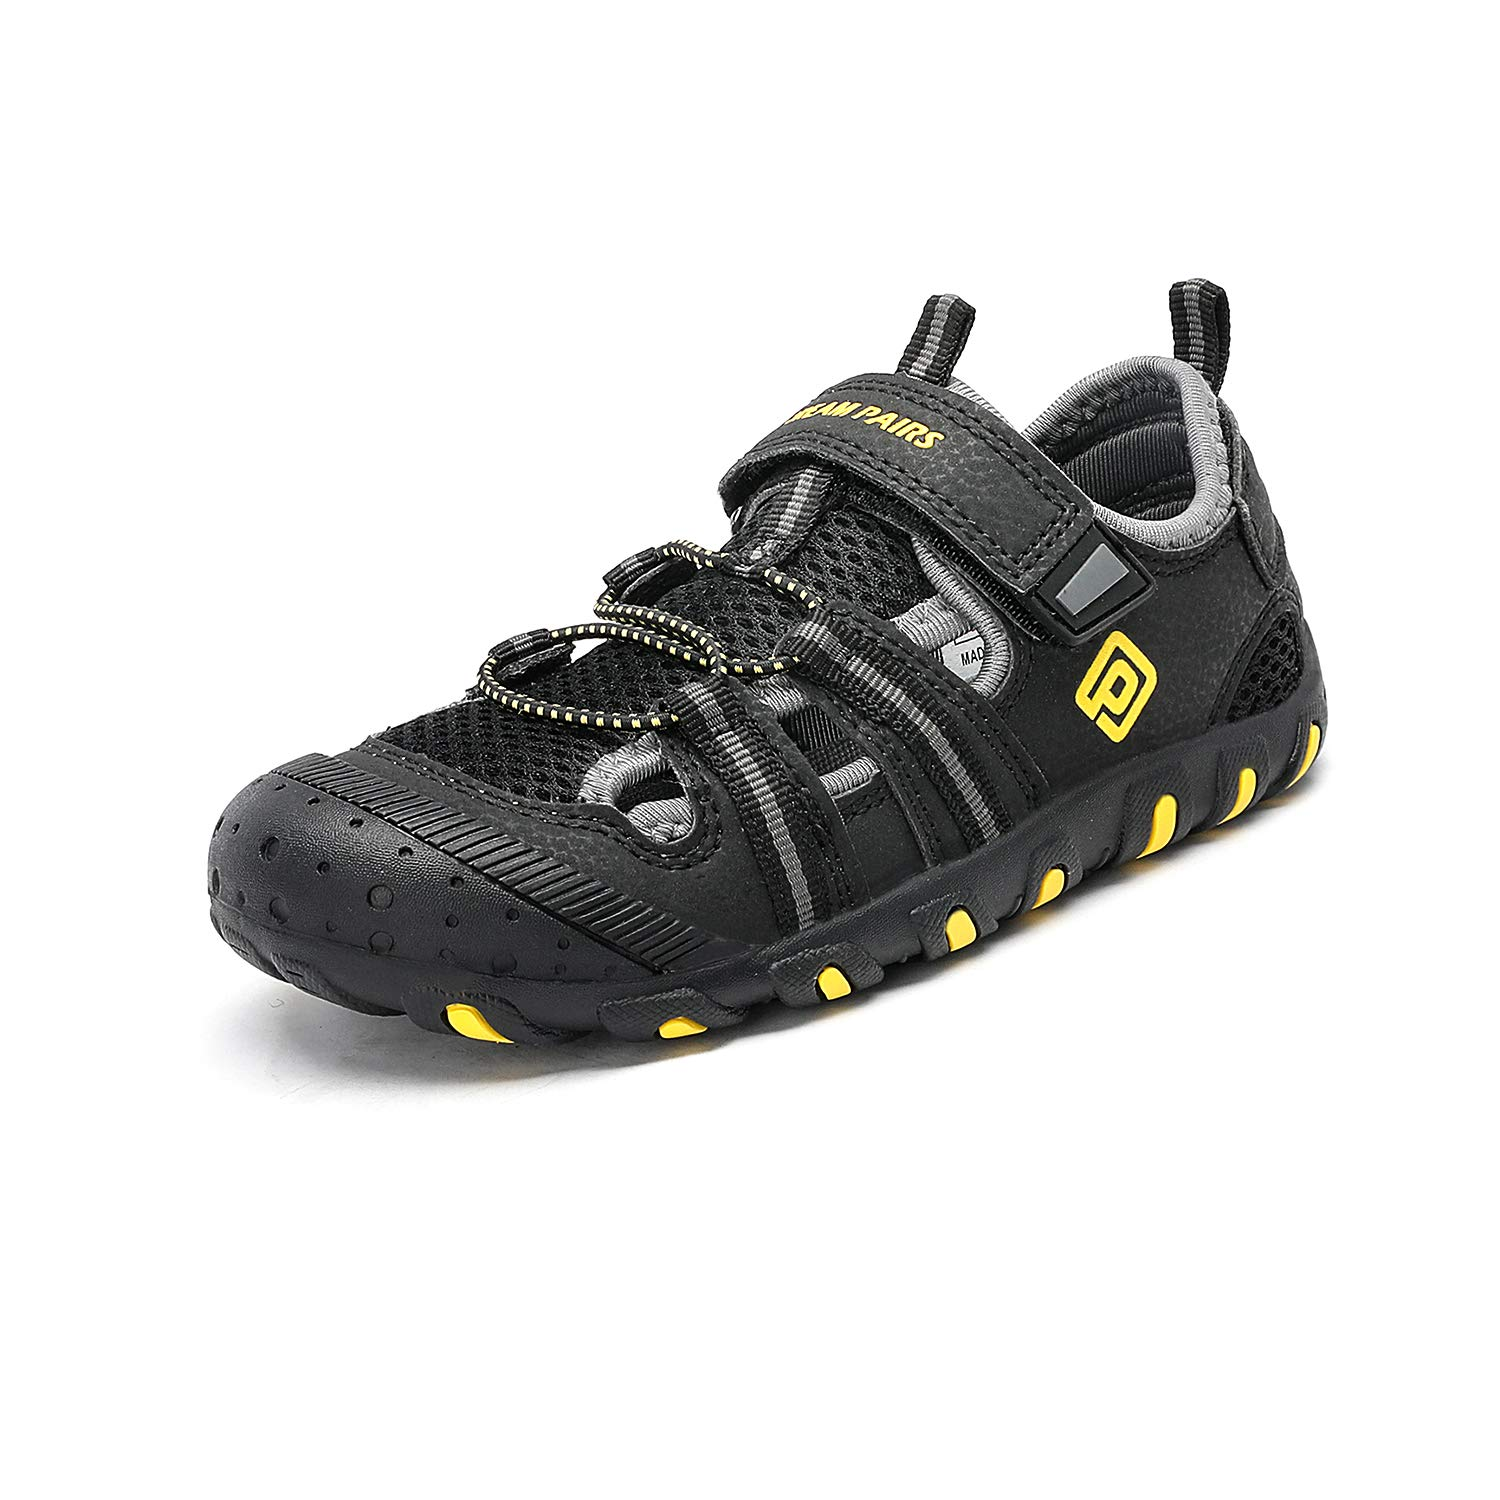 DREAM PAIRS Boys Girls 181106K Black Grey Yellow Closed-Toe Outdoor Summer Sport Sandals Size 6 M US Big Kid